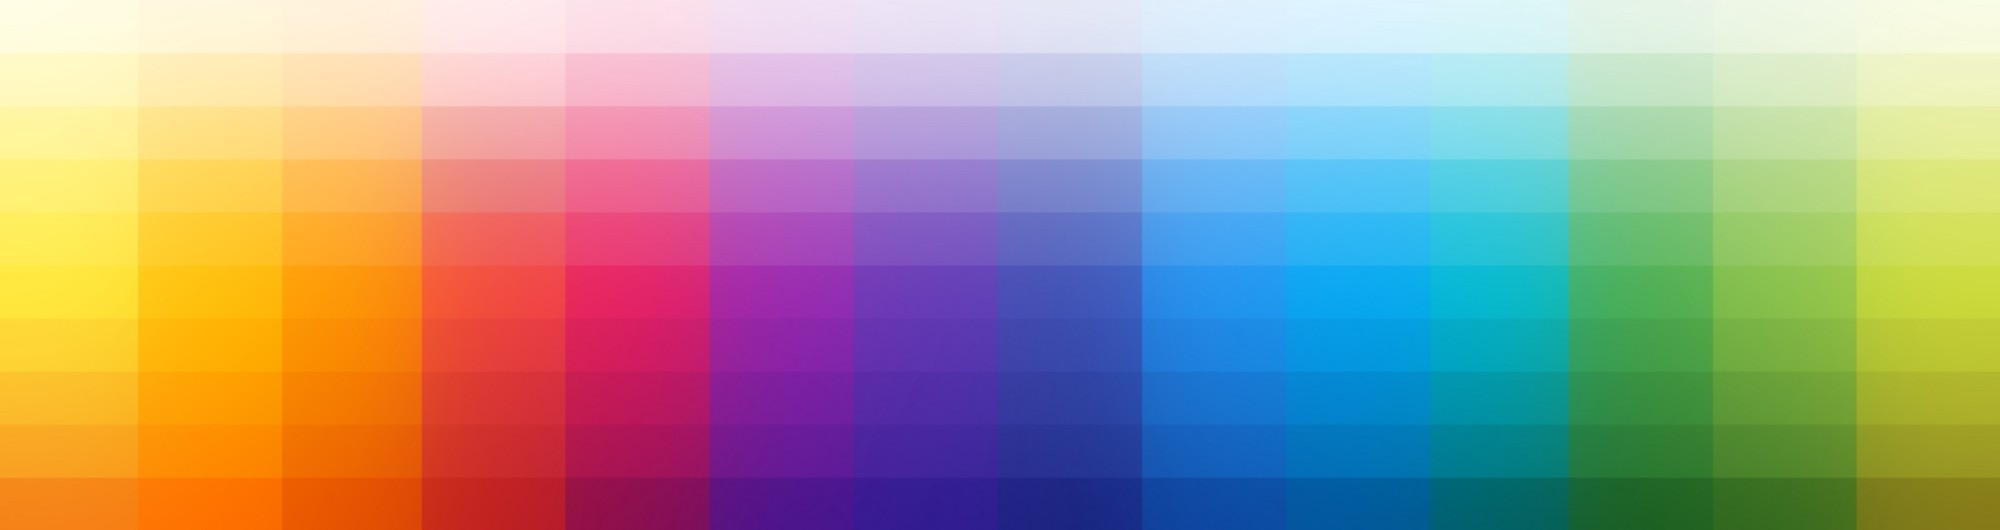 Import The Material Design Color Palette Into Sketch 3